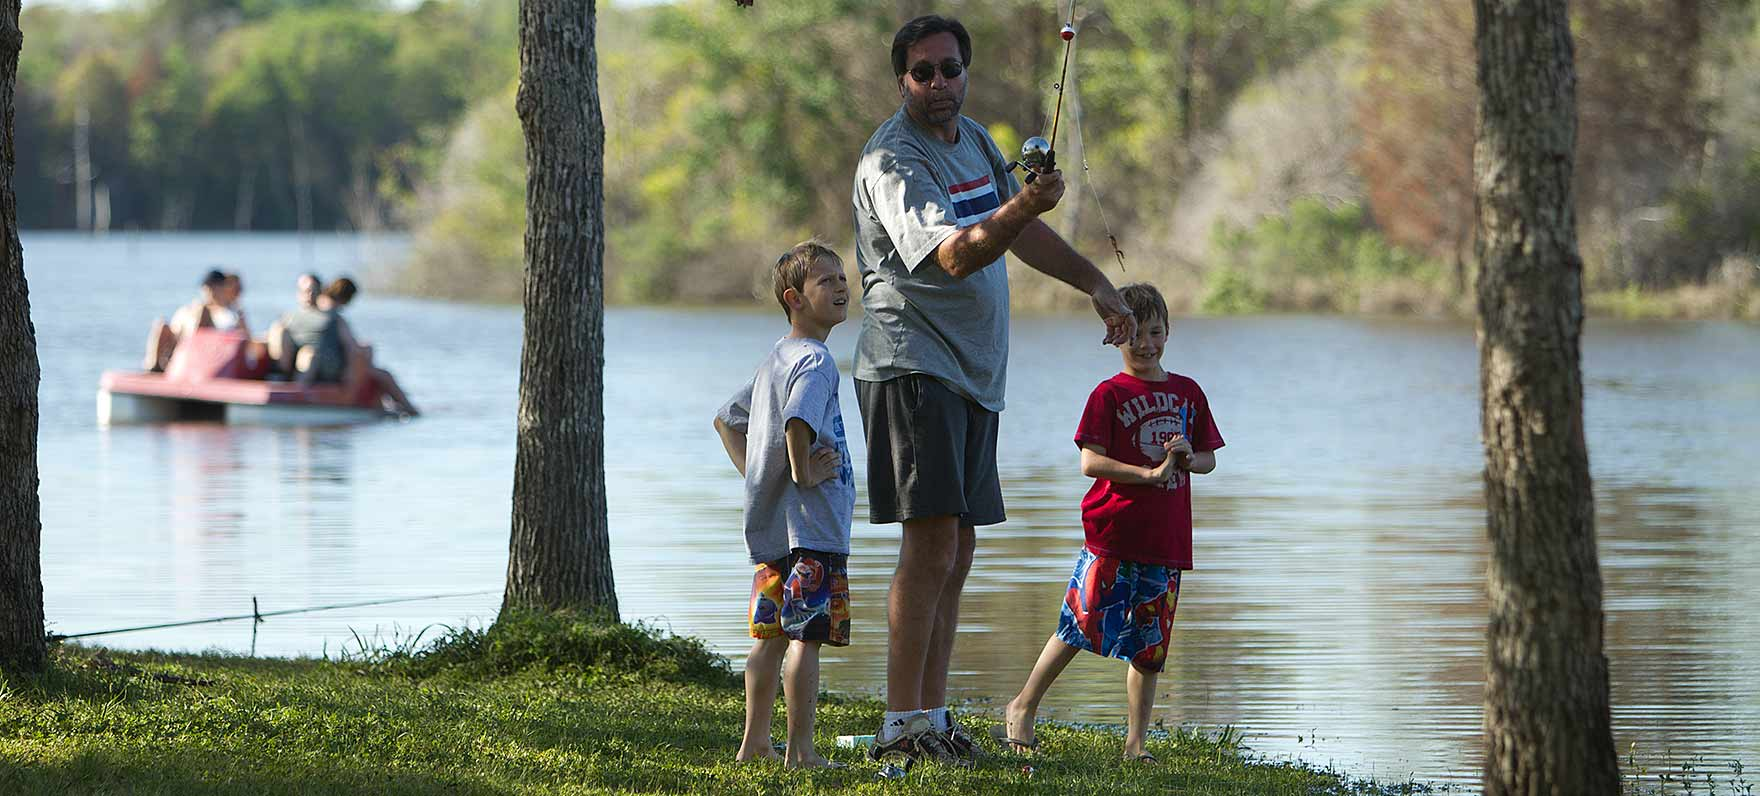 Fishing fun at Purtis Creek State Park in East Texas.